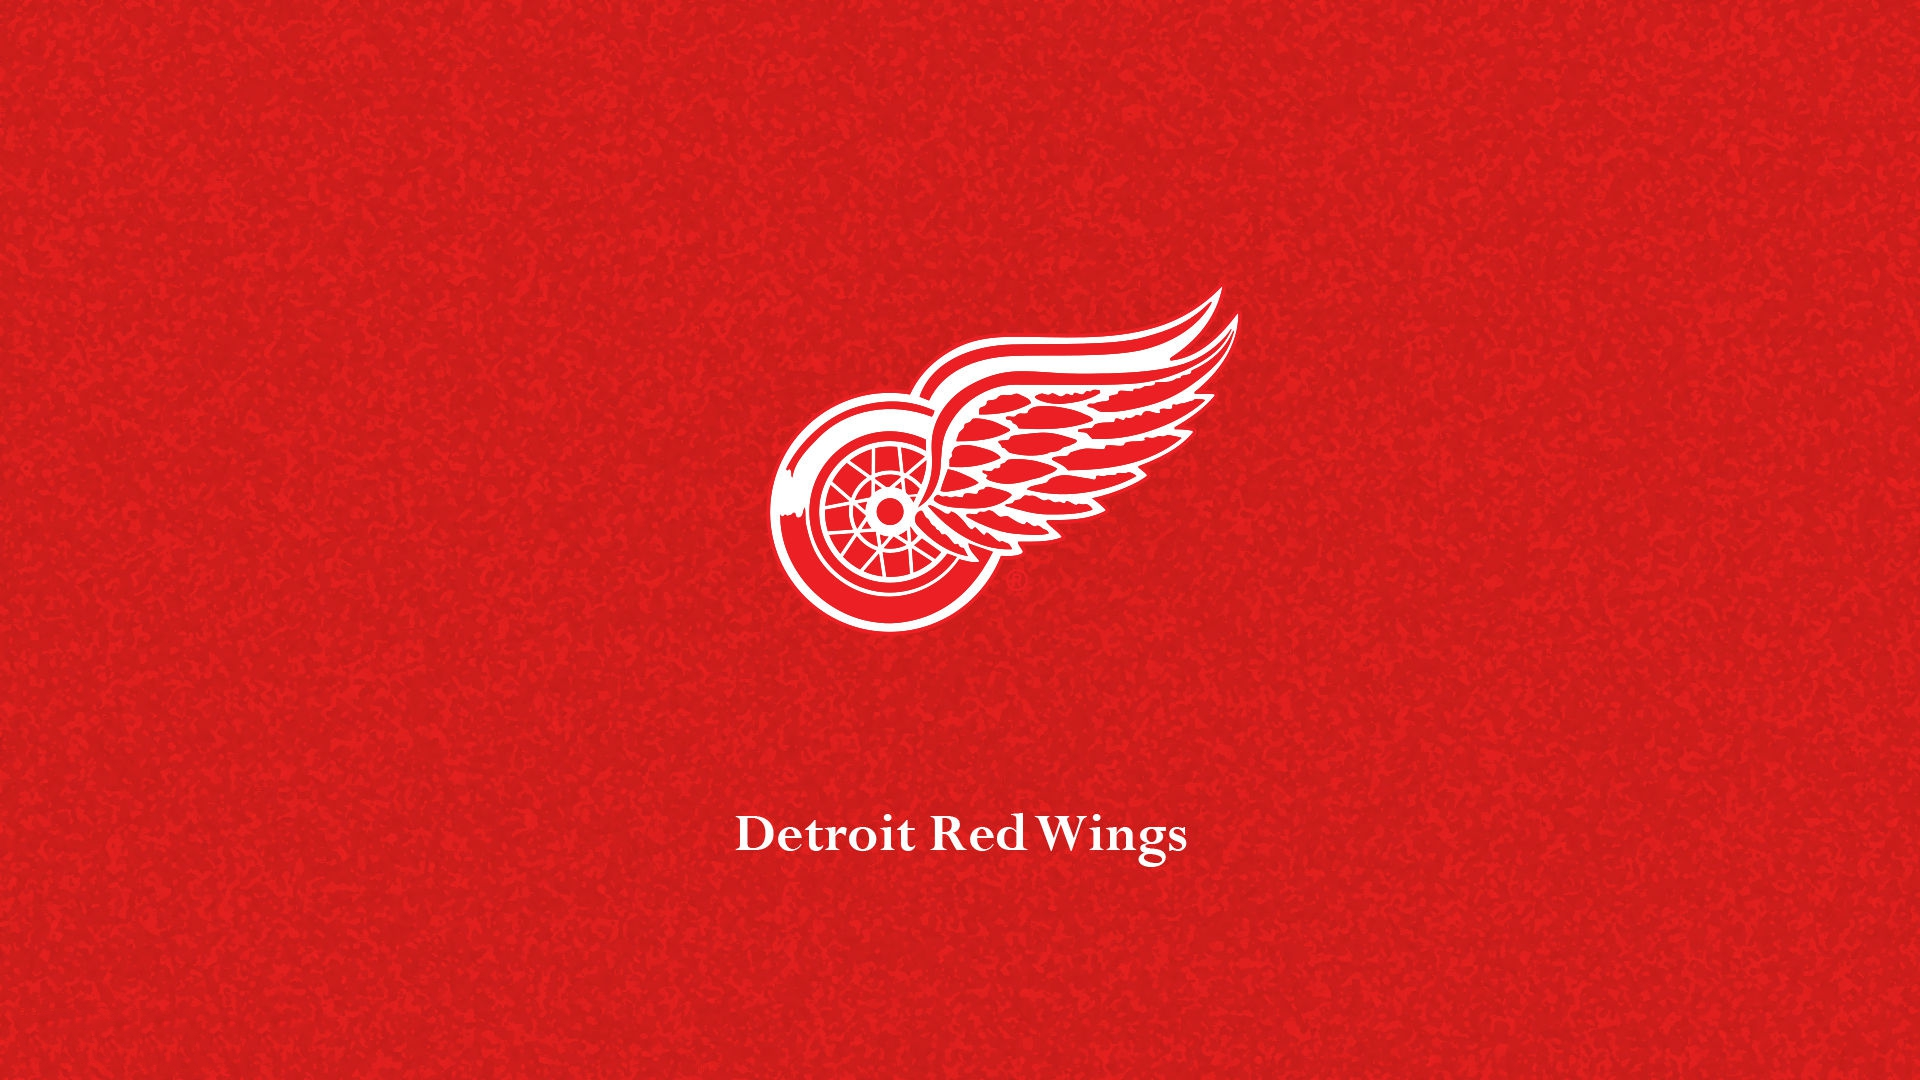 Download Detroit Red Wings Backgrounds 1920x1080